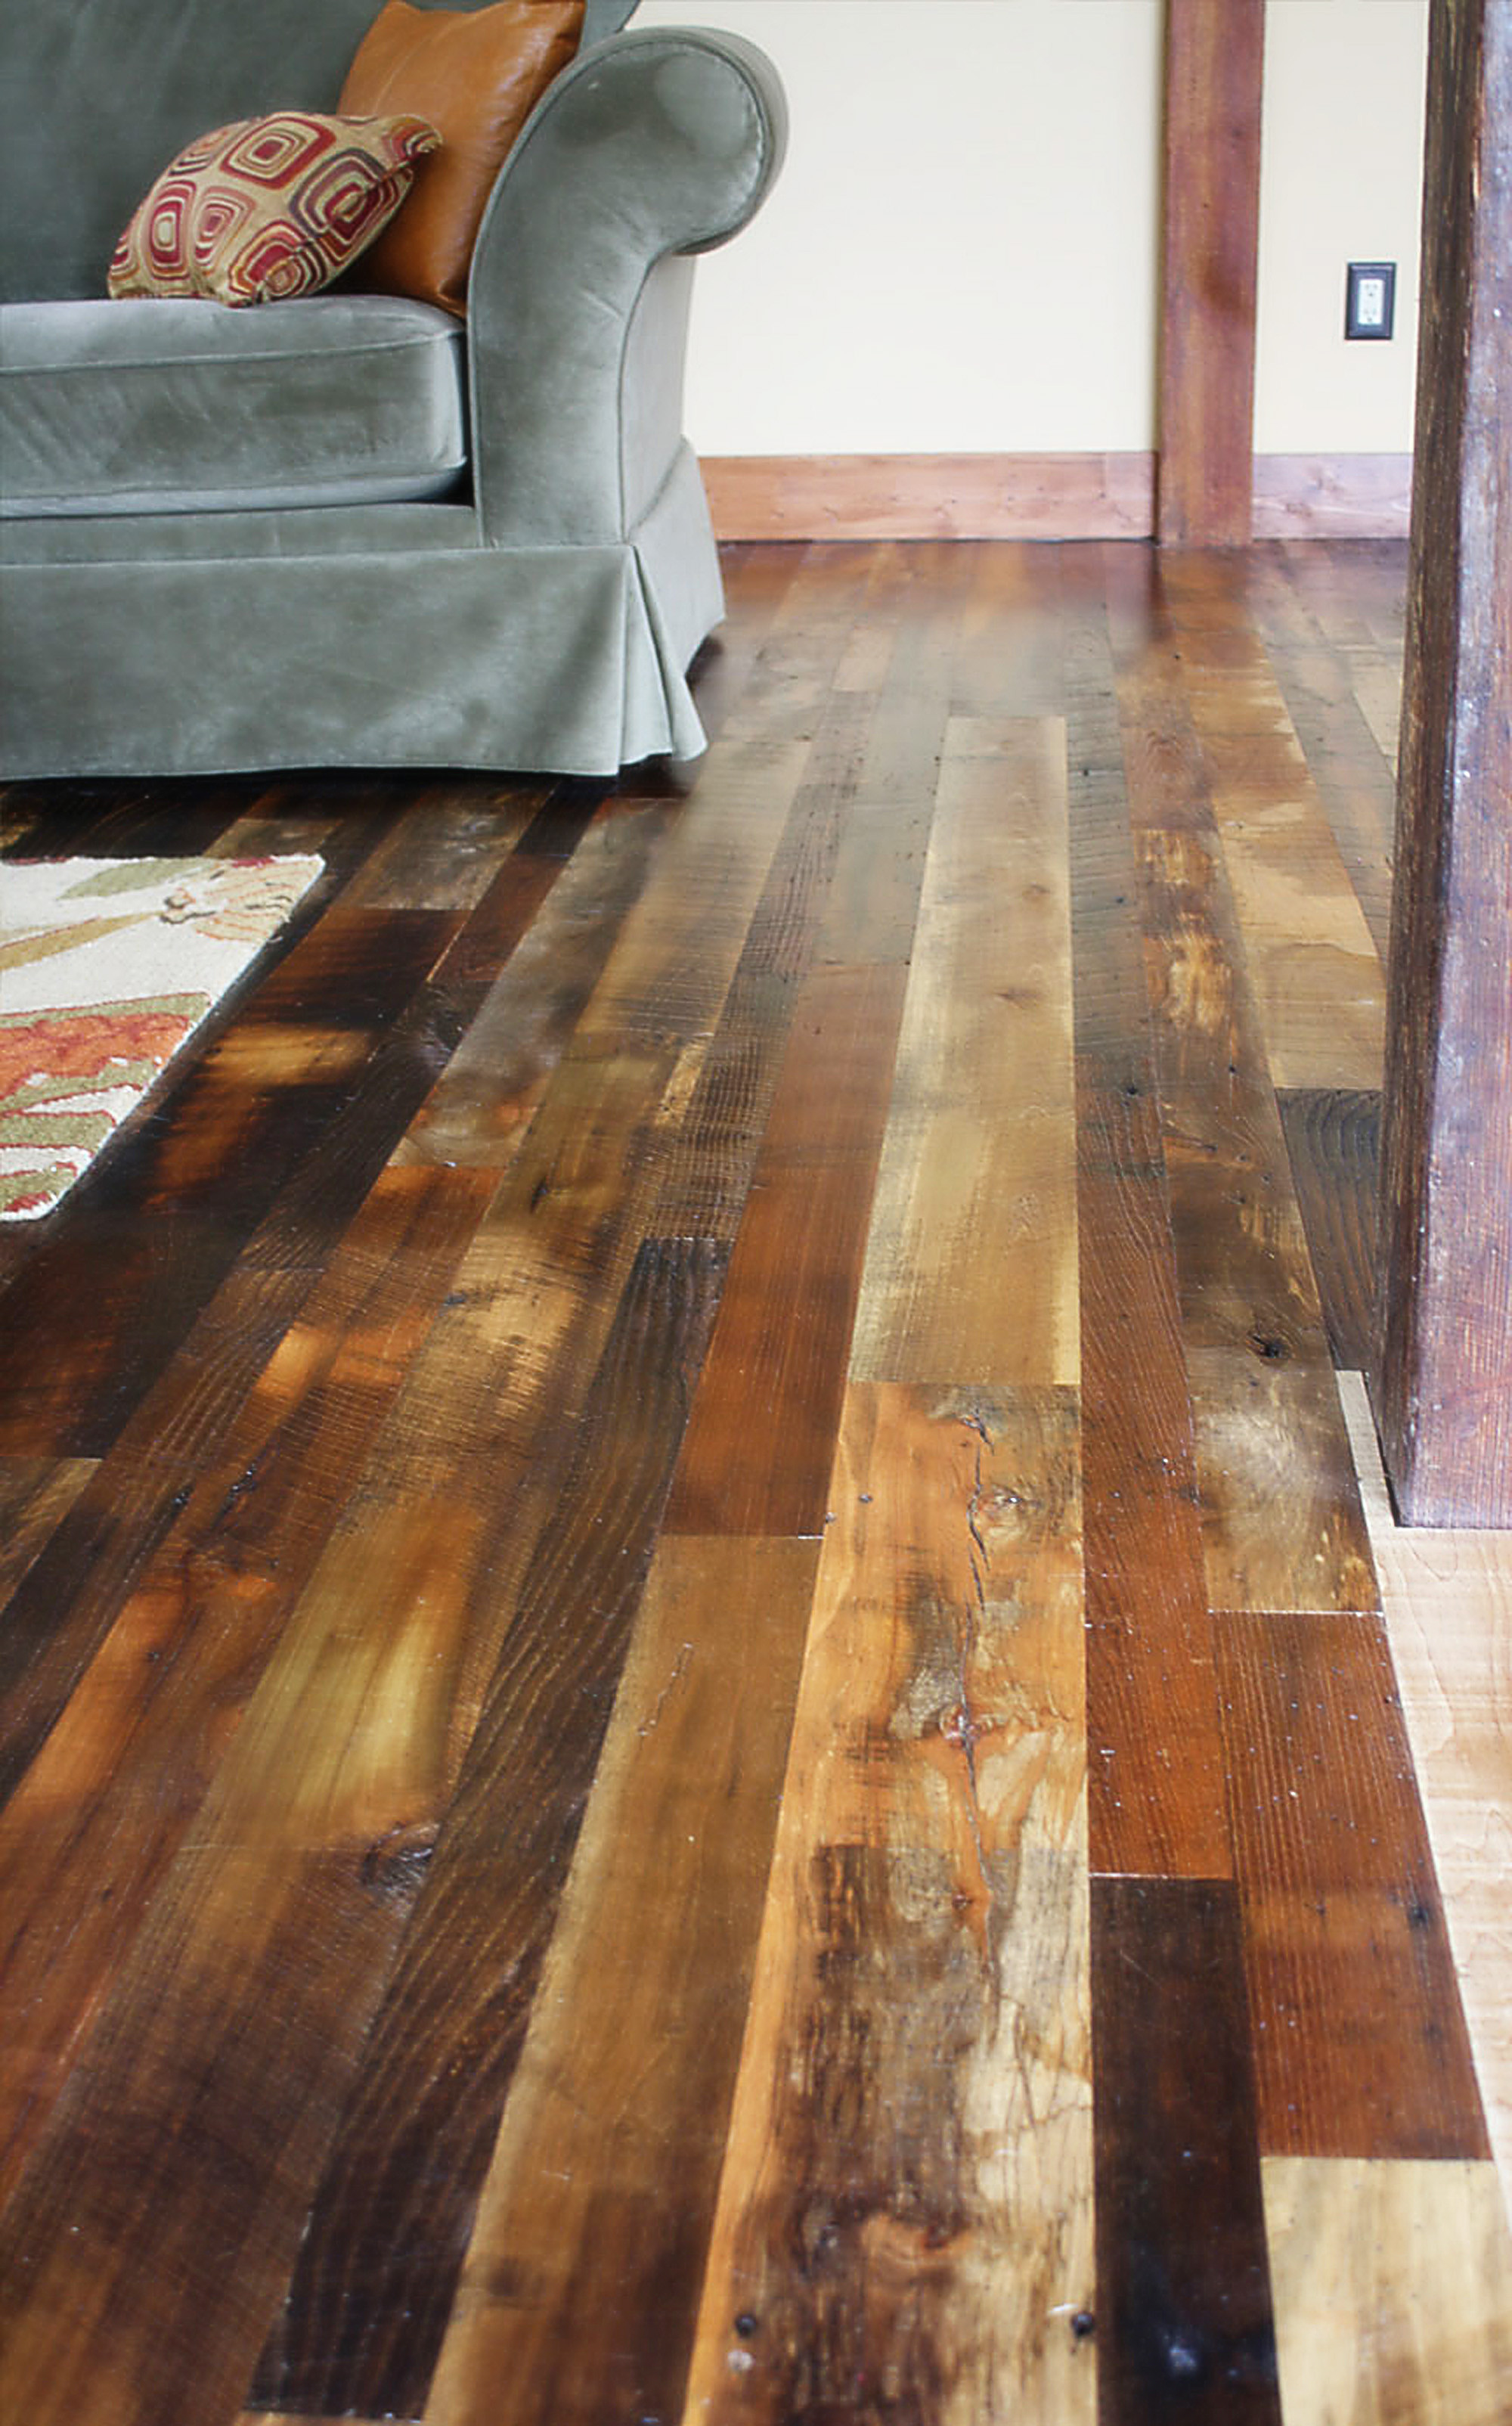 Grey Hand Scraped Hardwood Floors Of Rustic Hand Scraped Hardwood Flooring Sevenstonesinc Com Intended for attractive Distressed Rustic Wood Flooring for Floor